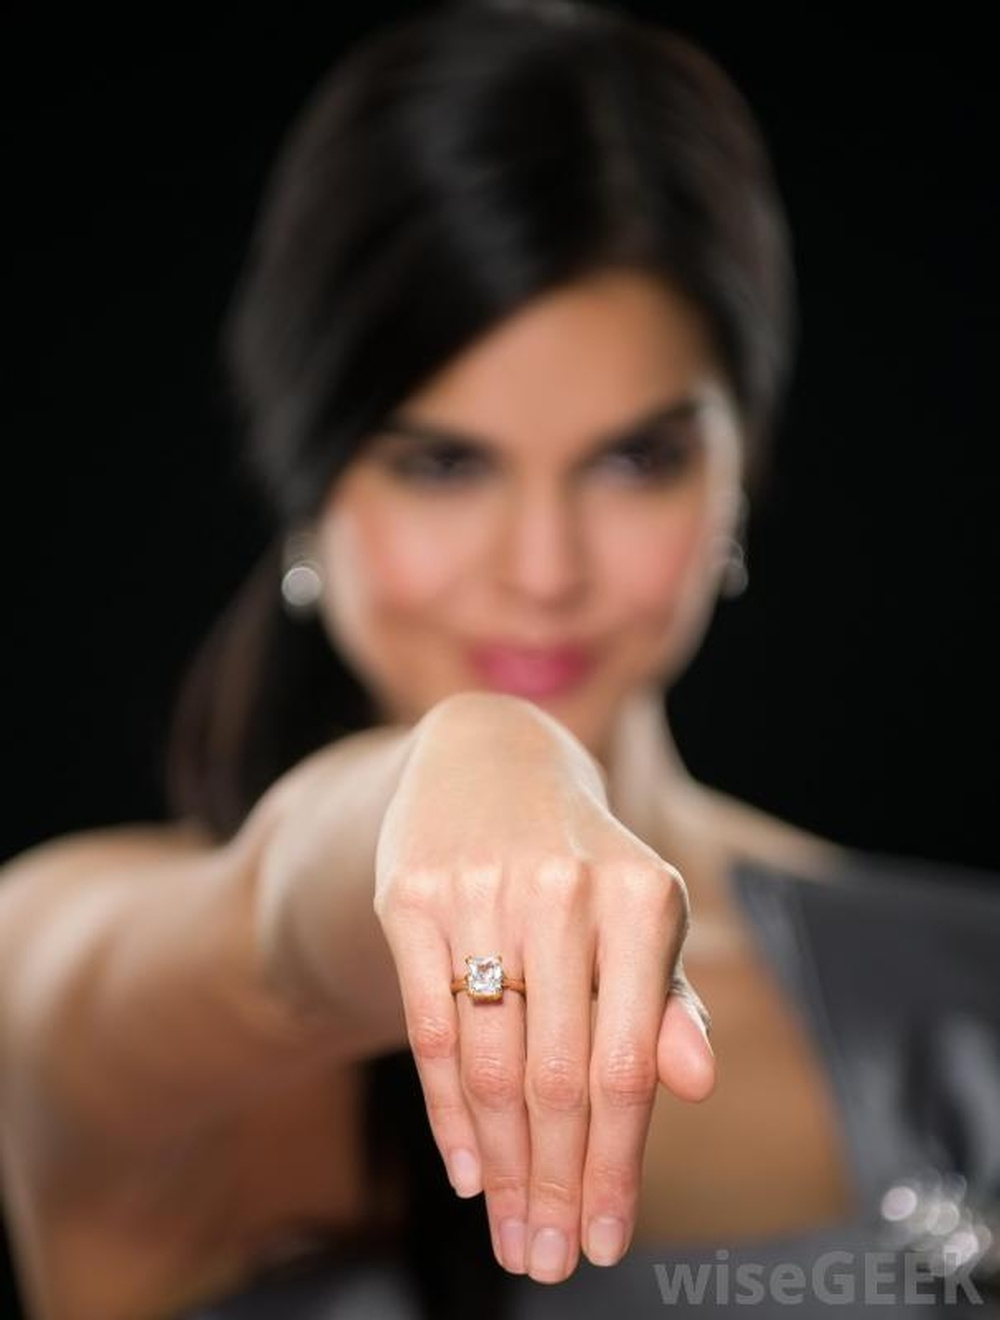 woman-with-diamond-ring-on-hand.jpg